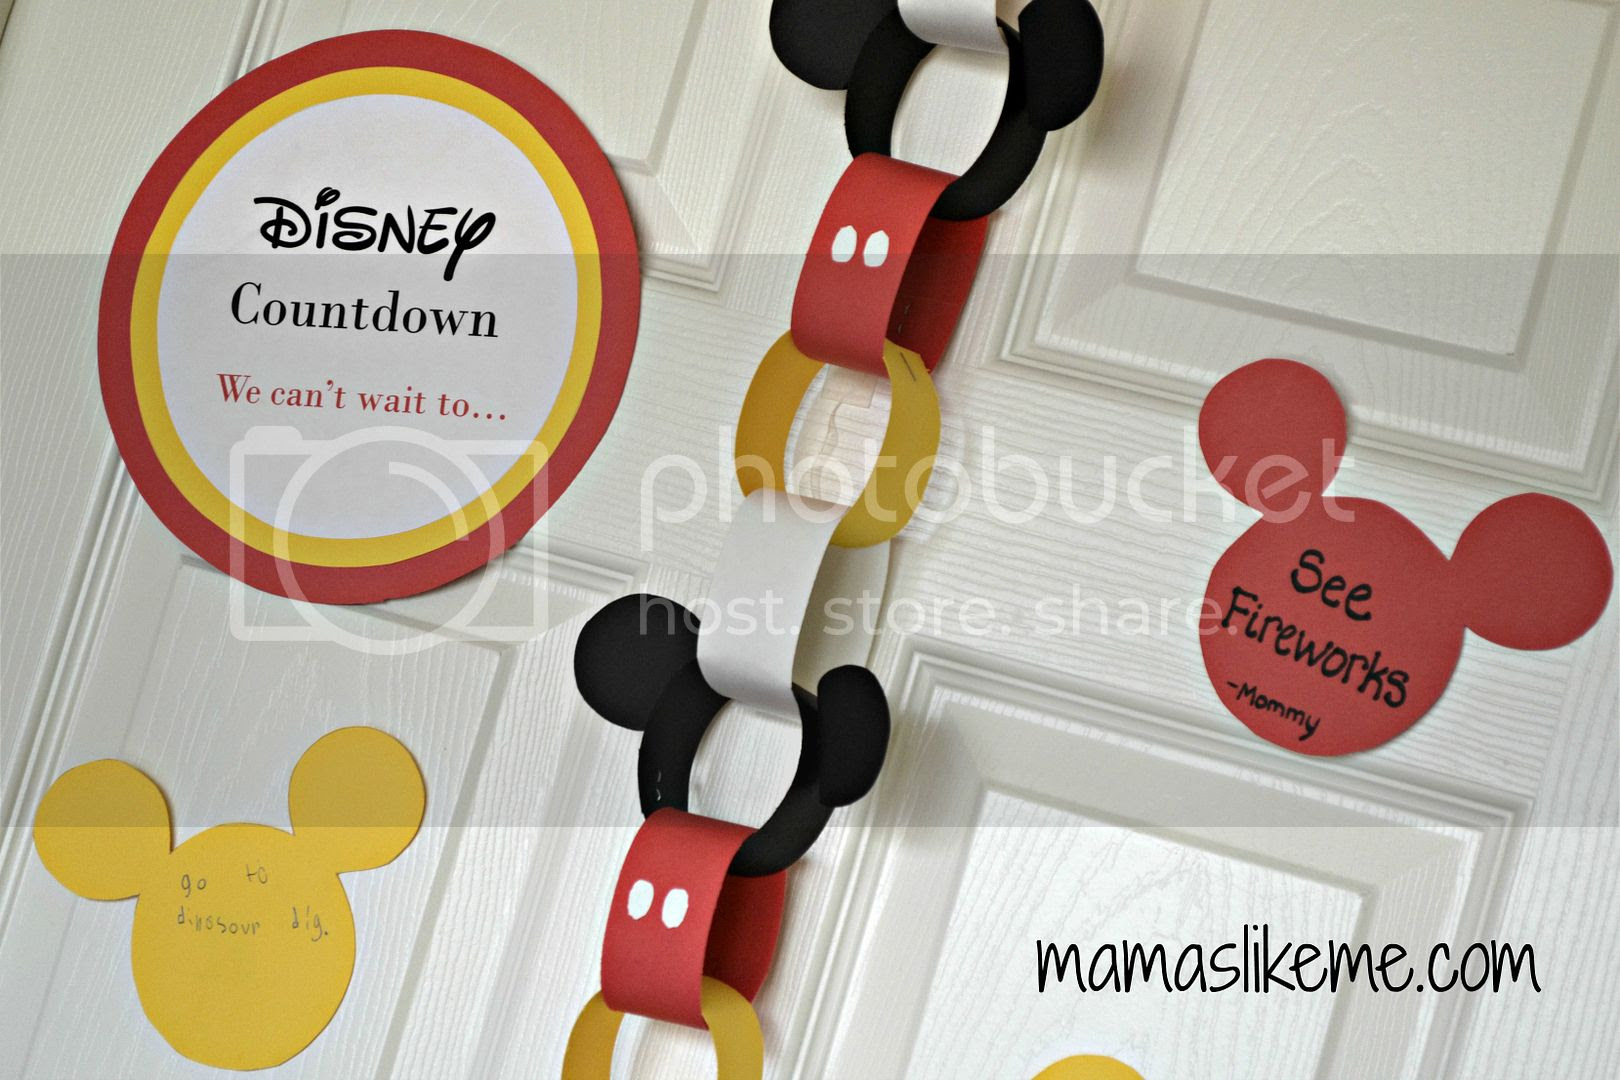 Mickey Mouse Inspired Disney Countdown Paper Chain